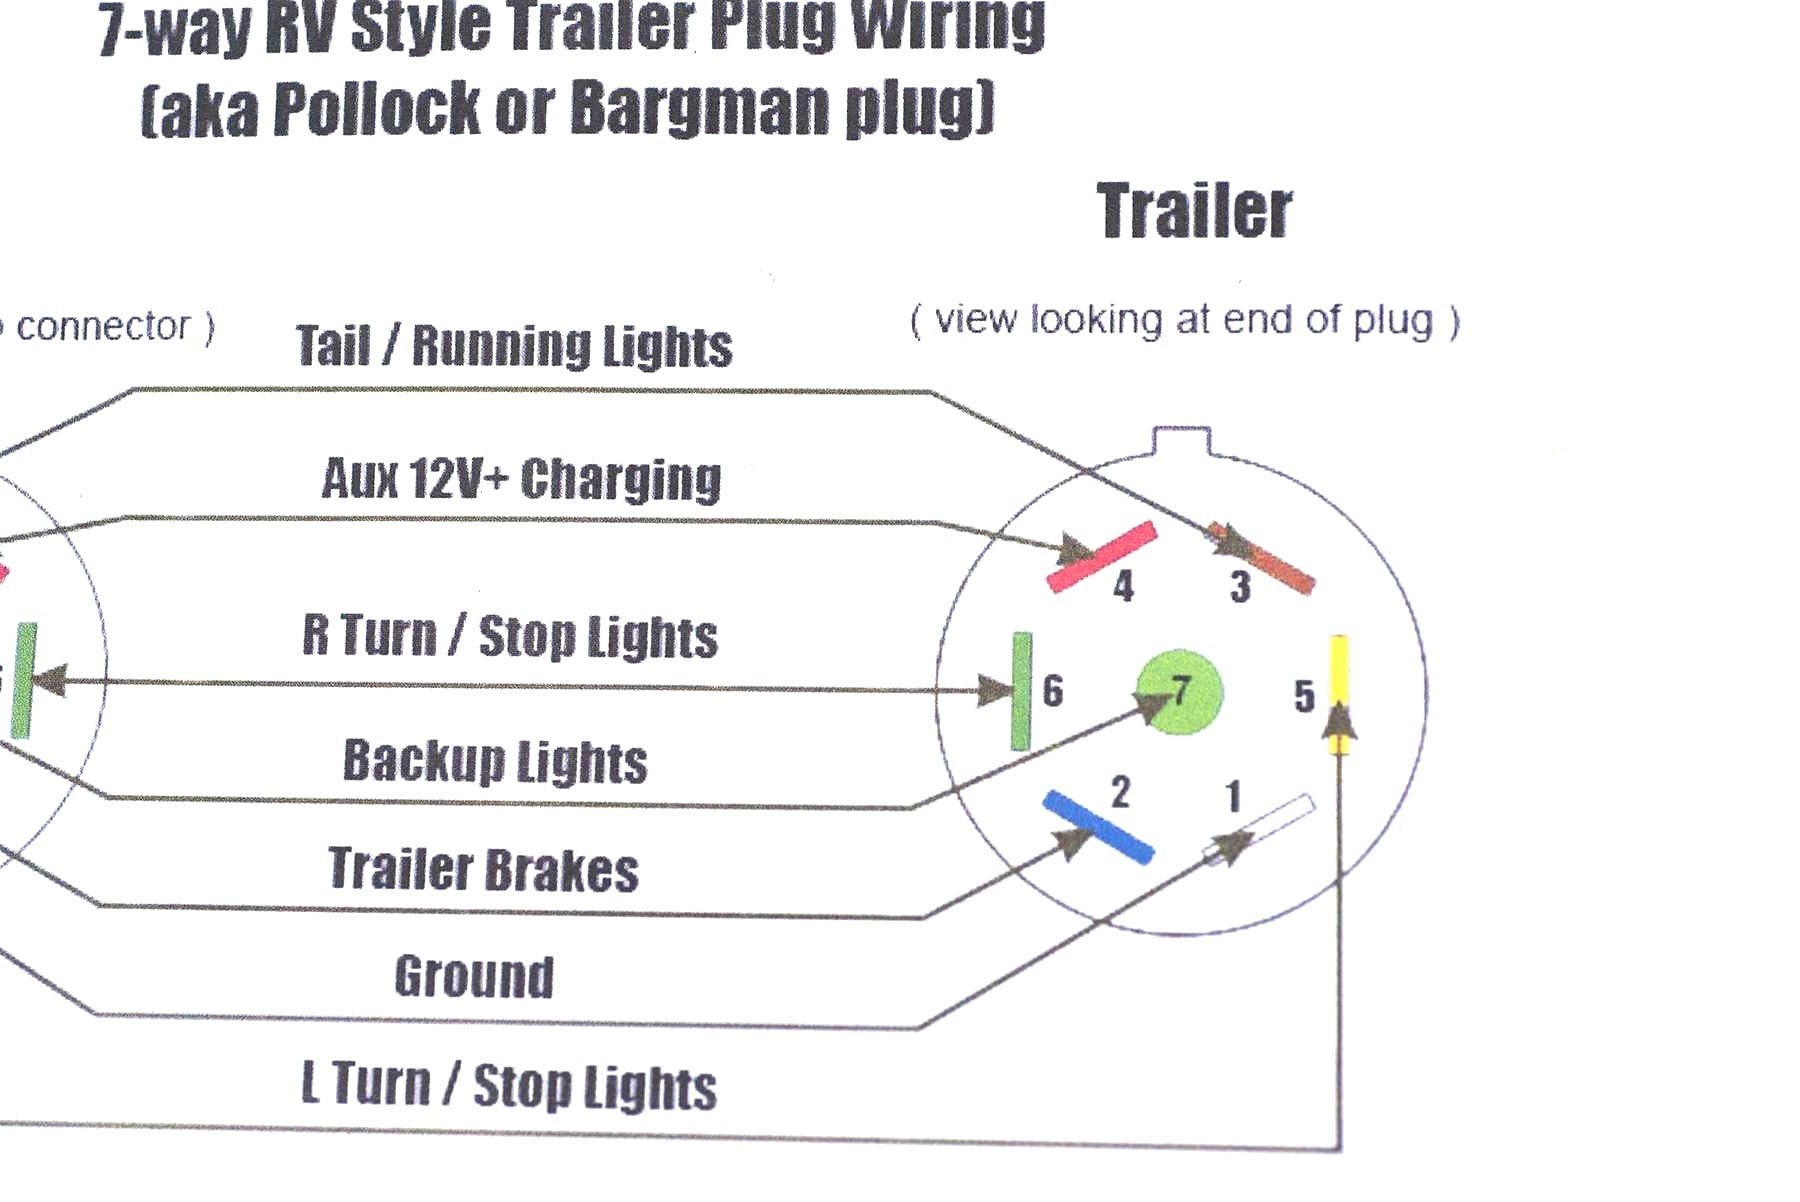 Hopkins 6 24 Volts Wiring Diagram Book Of Hoppy Trailer Wiring - Hopkins Trailer Plug Wiring Diagram